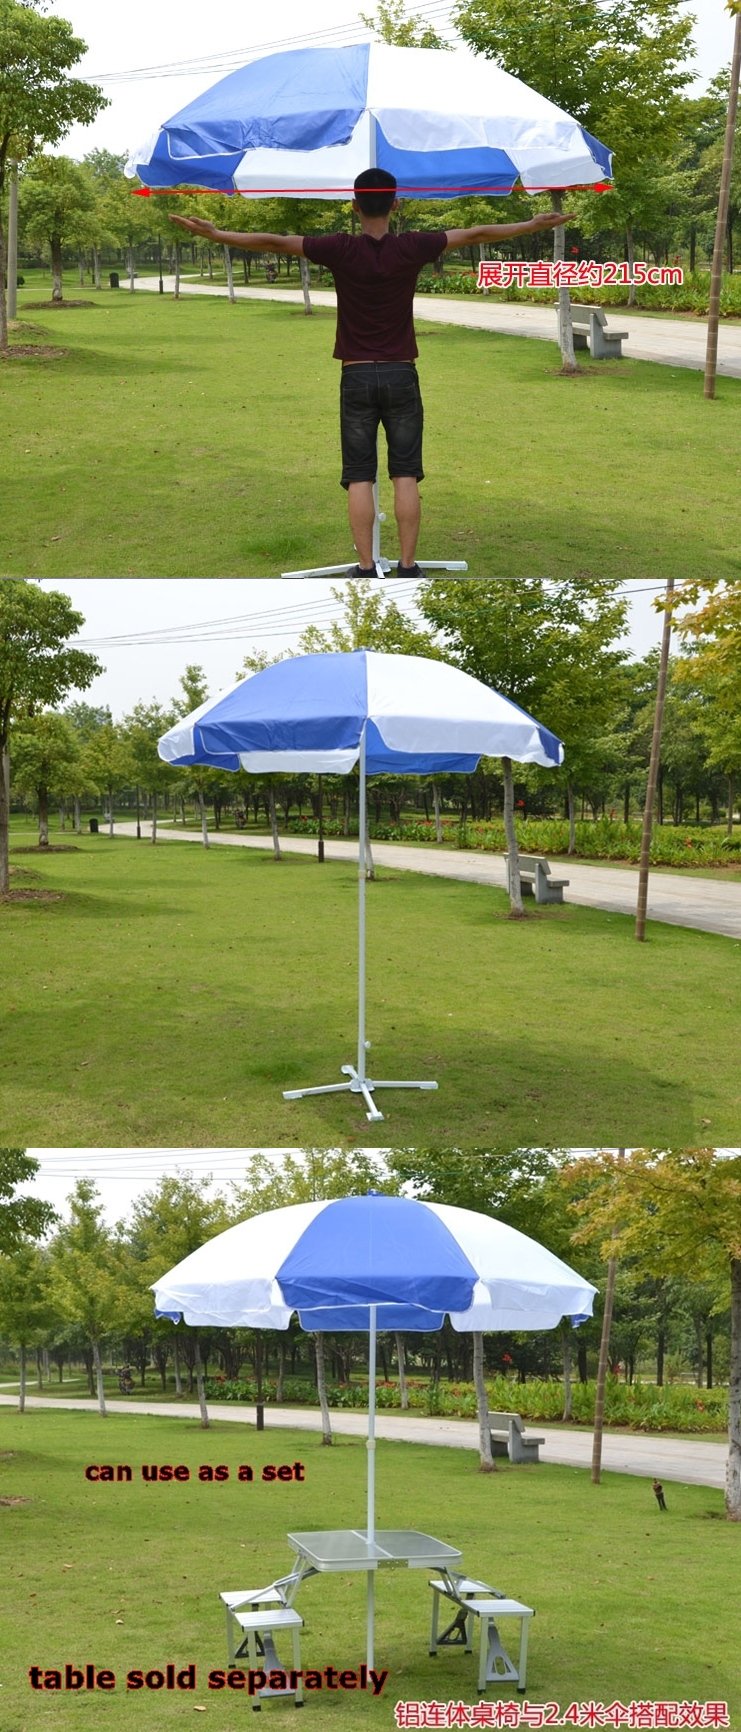 giant umbrella come with stand some sample photo if you need the table please click here: metre giant umbrella